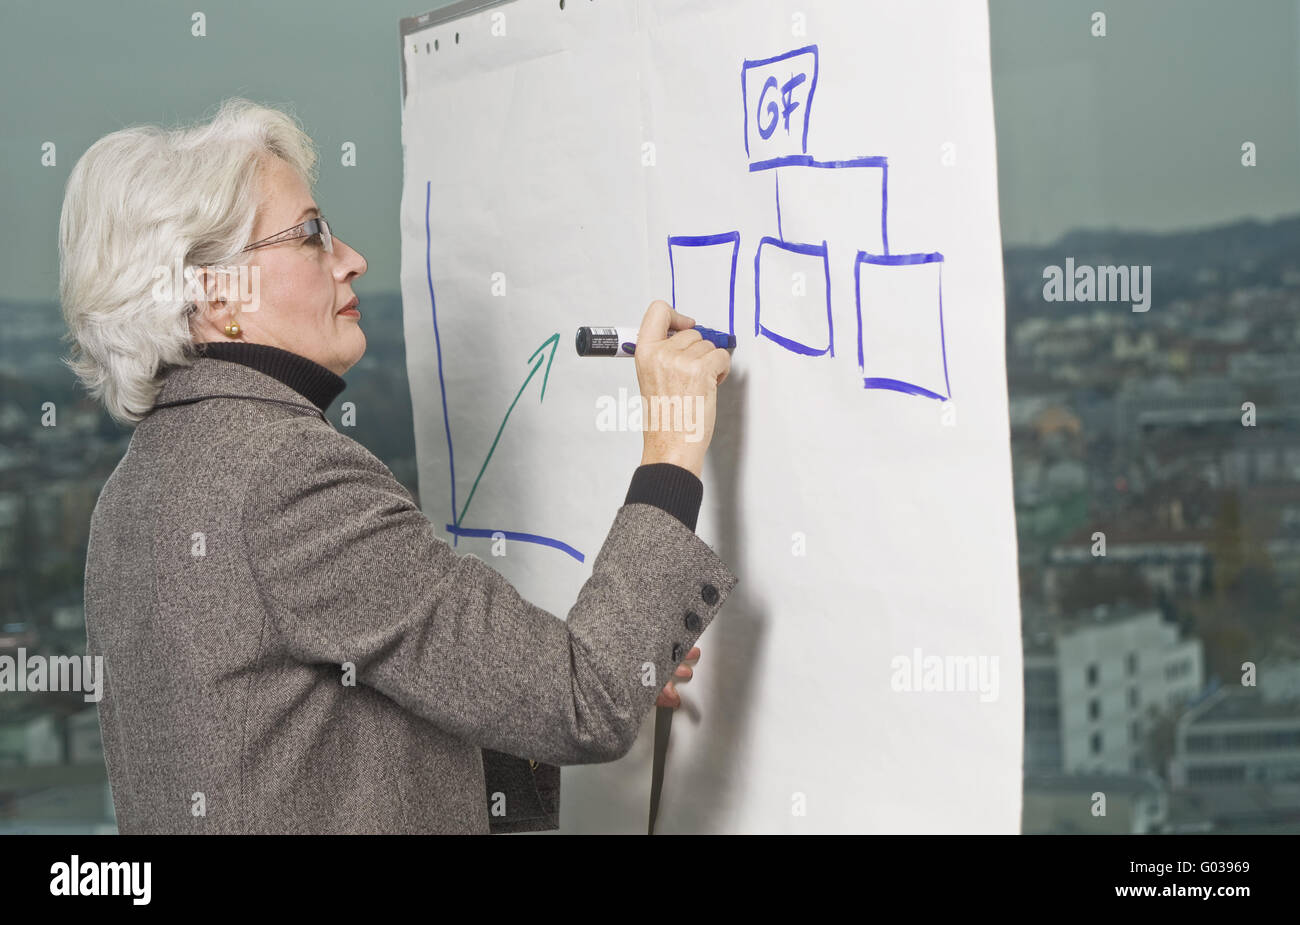 Senior Business woman writing on a whitewall - Stock Image